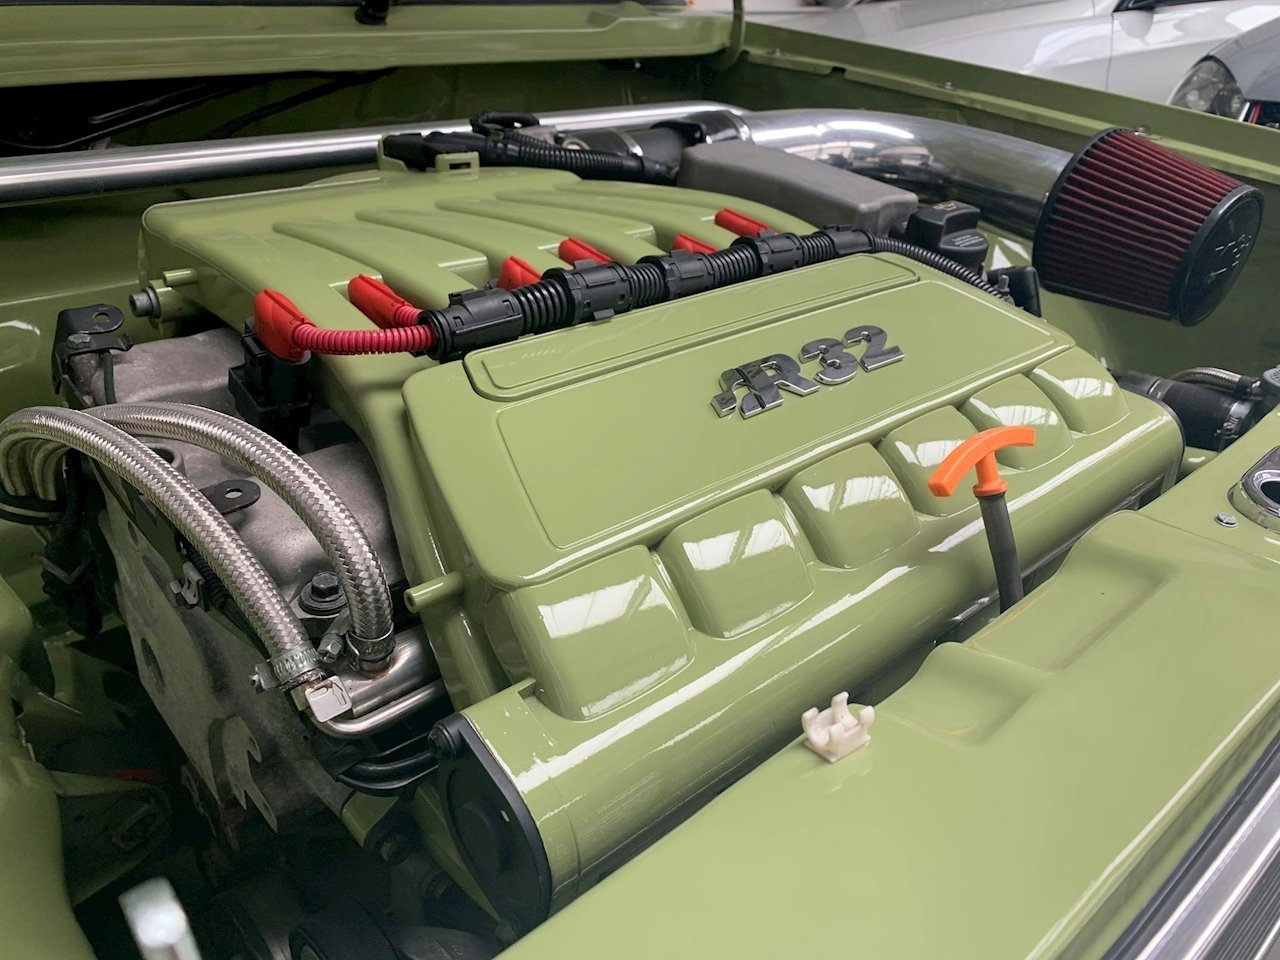 1982 VW golf 3.2 vag conversion, show winning  For Sale (picture 2 of 5)